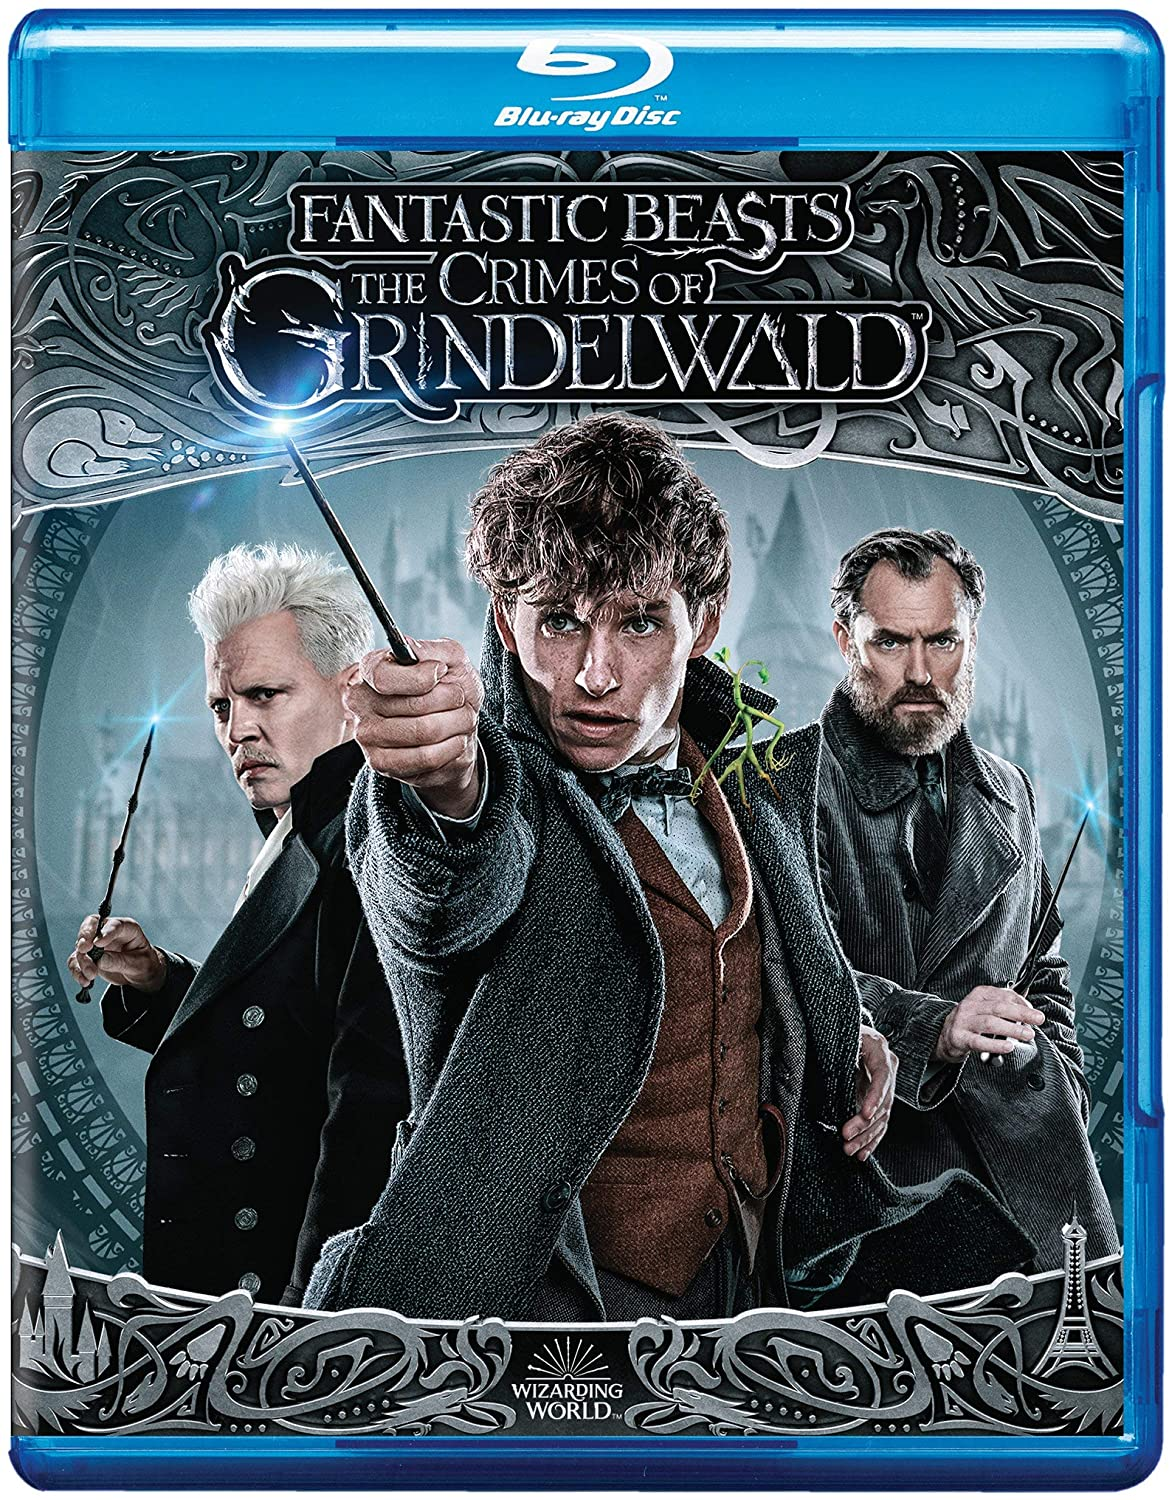 Fantastic Beasts: The Crimes of Grindelwald (Blu-ray + DVD + Digital Combo Pack)